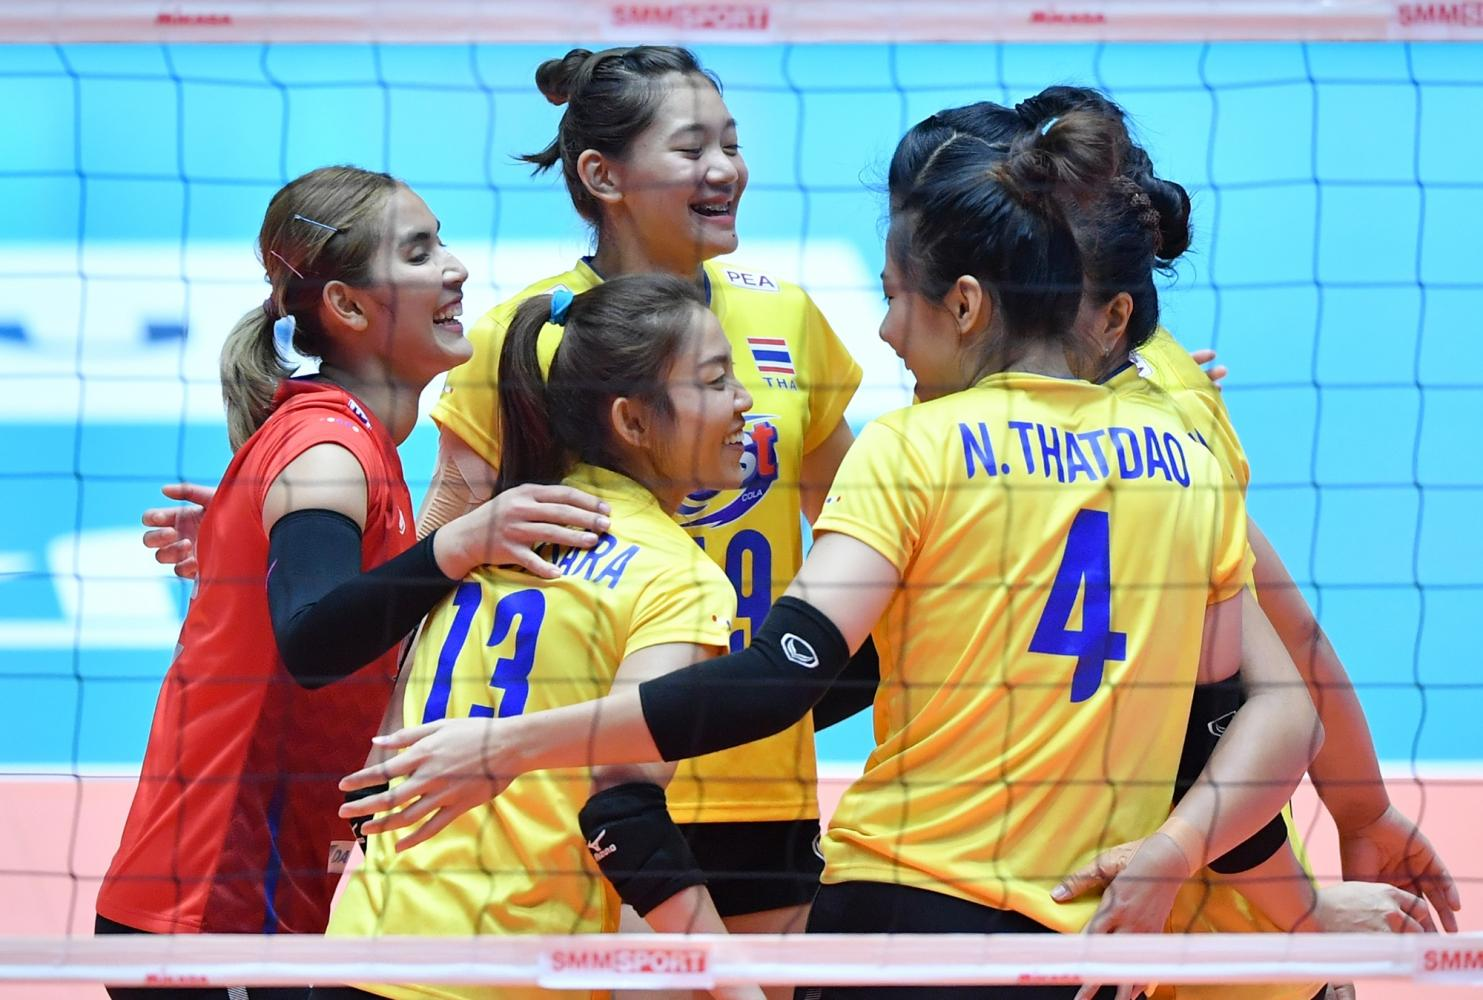 Thai players celebrate during their semi-final against China on Saturday. They lost to Japan in the 2019 Asian Women's Volleyball Championship final on Sunday.